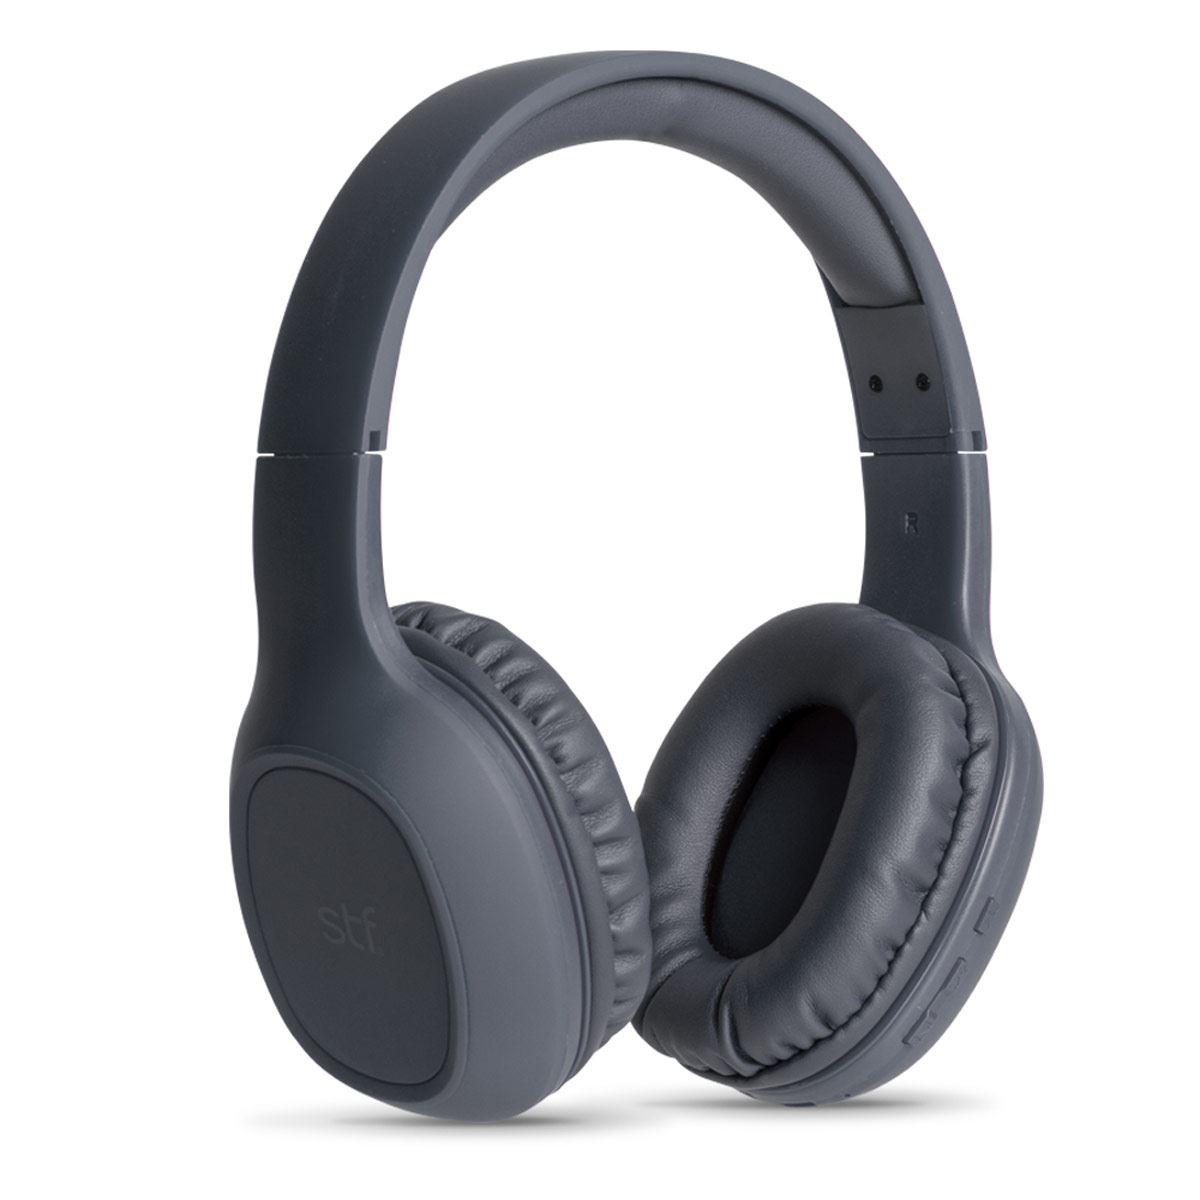 Audífonos Stuffactory Echo Bluetooth On Ear Negros